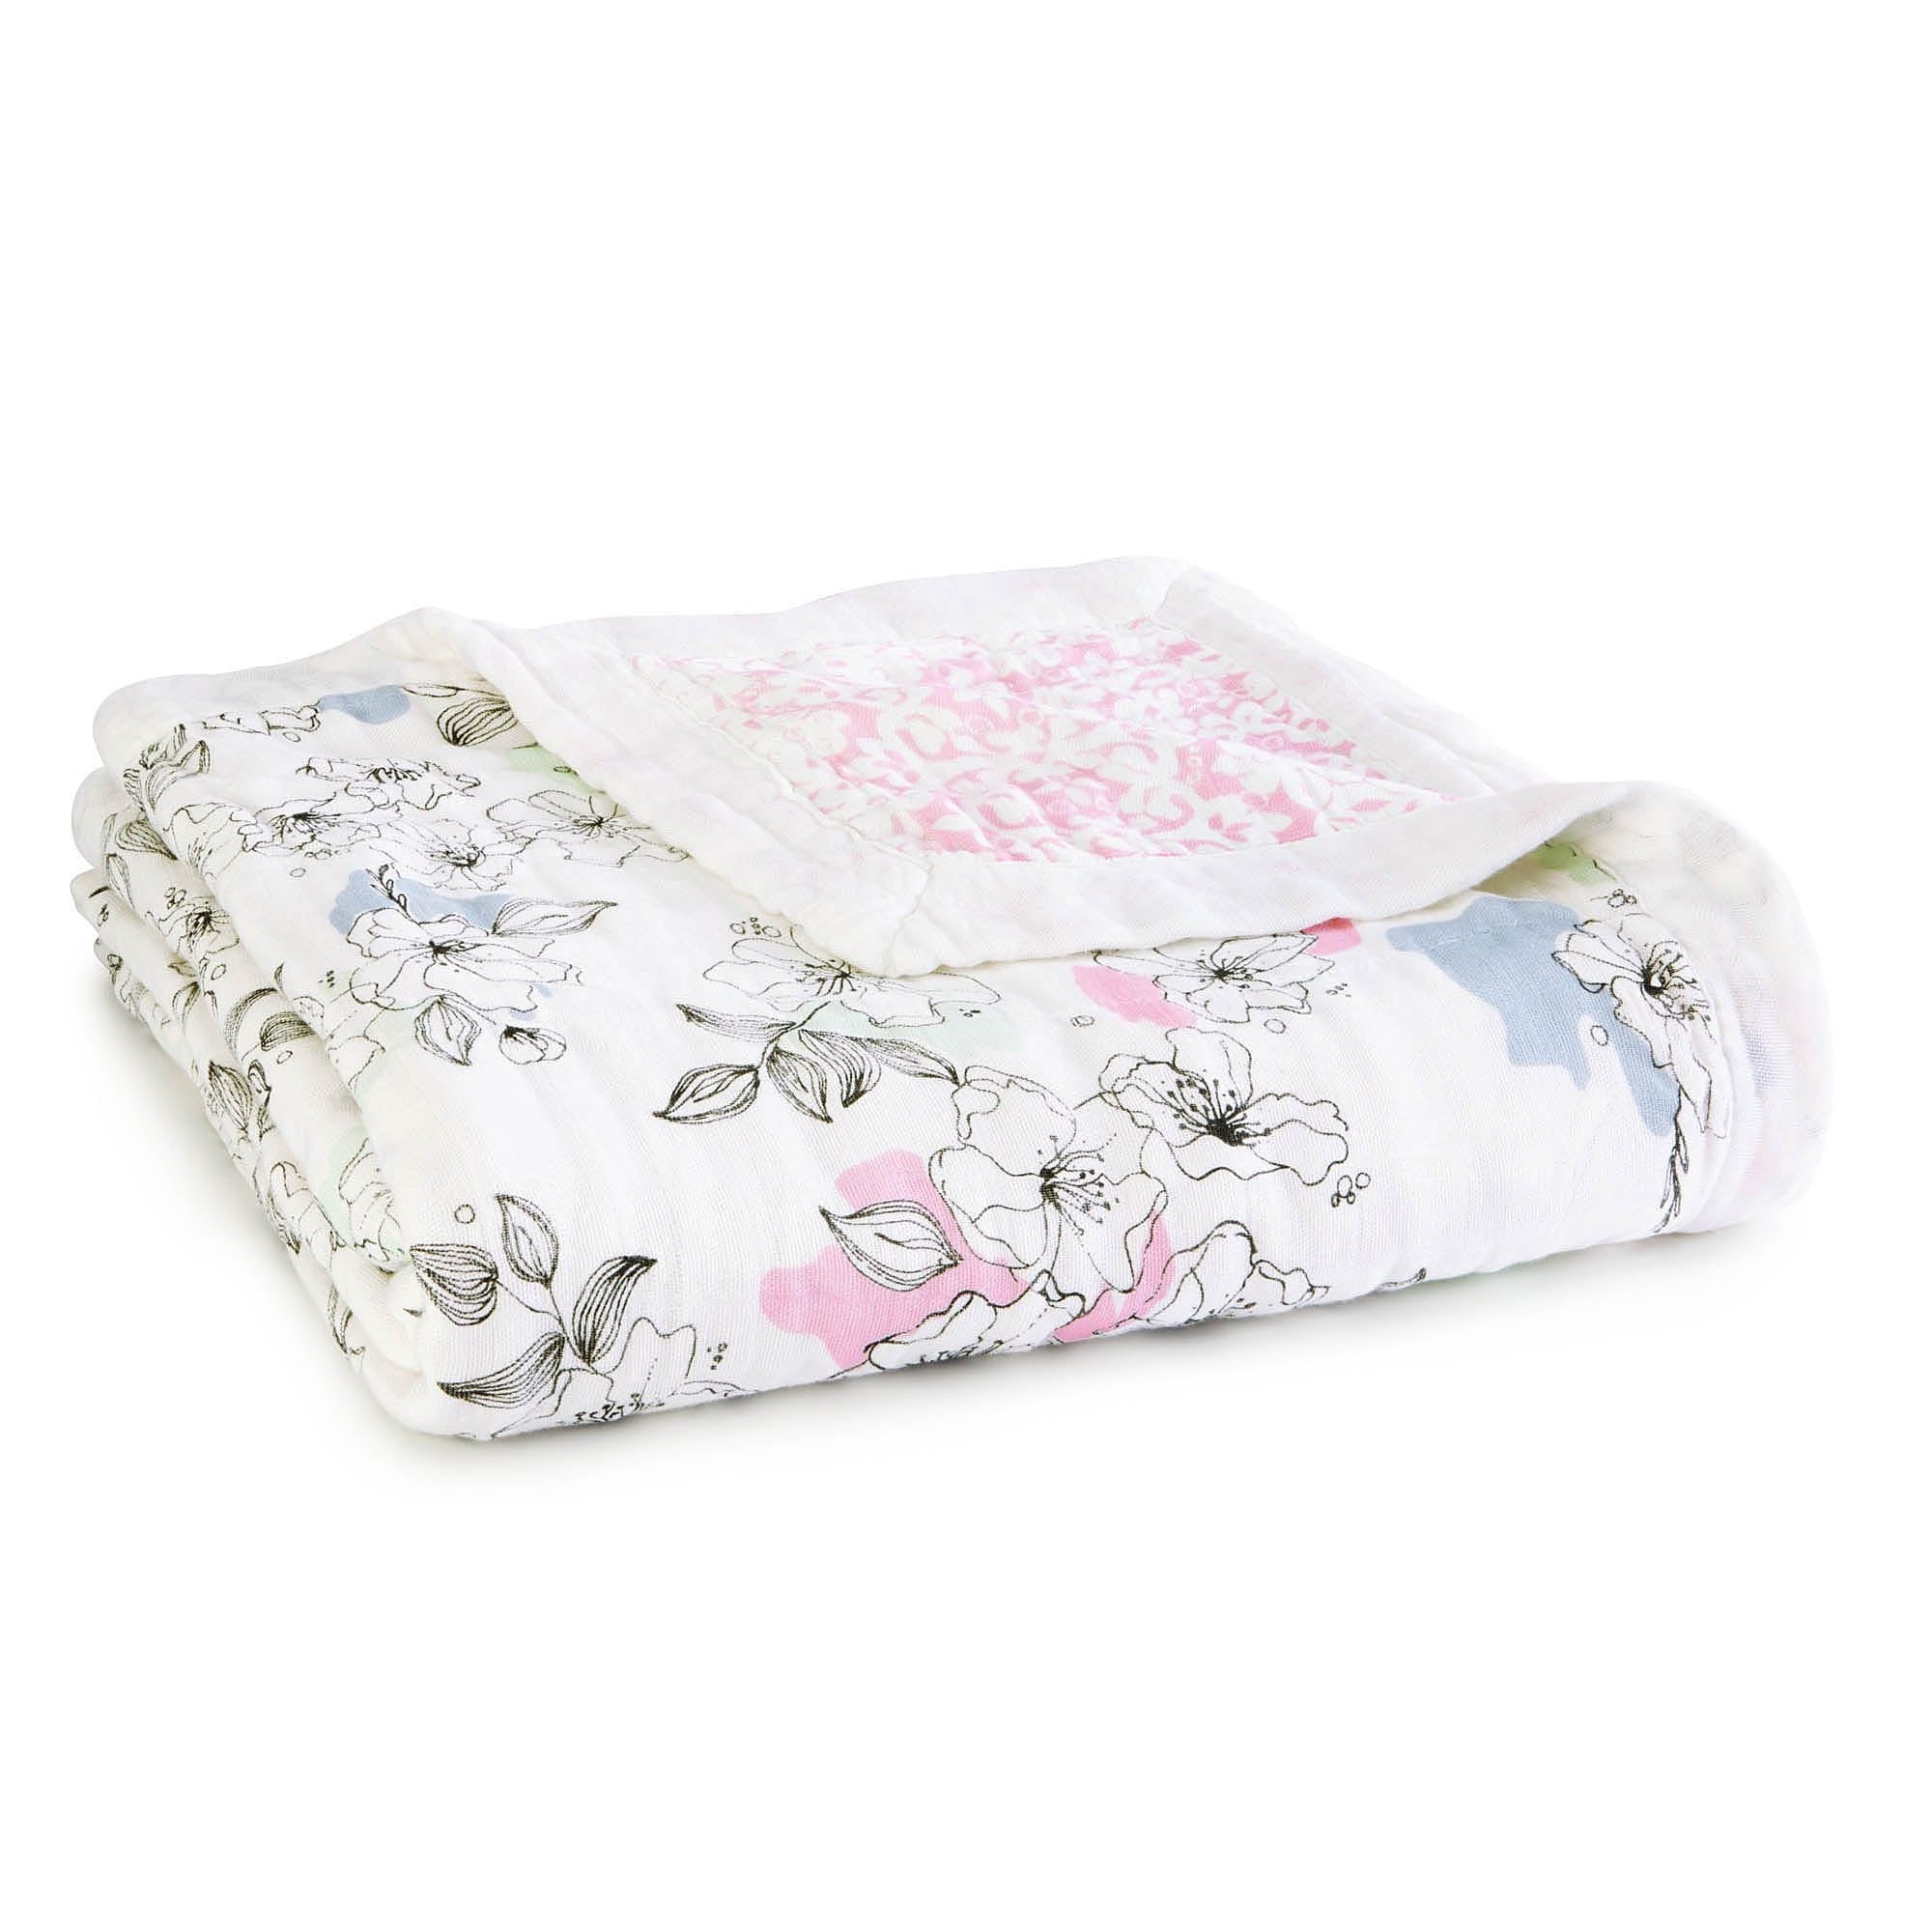 Aden and Anais Meadowlark silky soft dream blanket